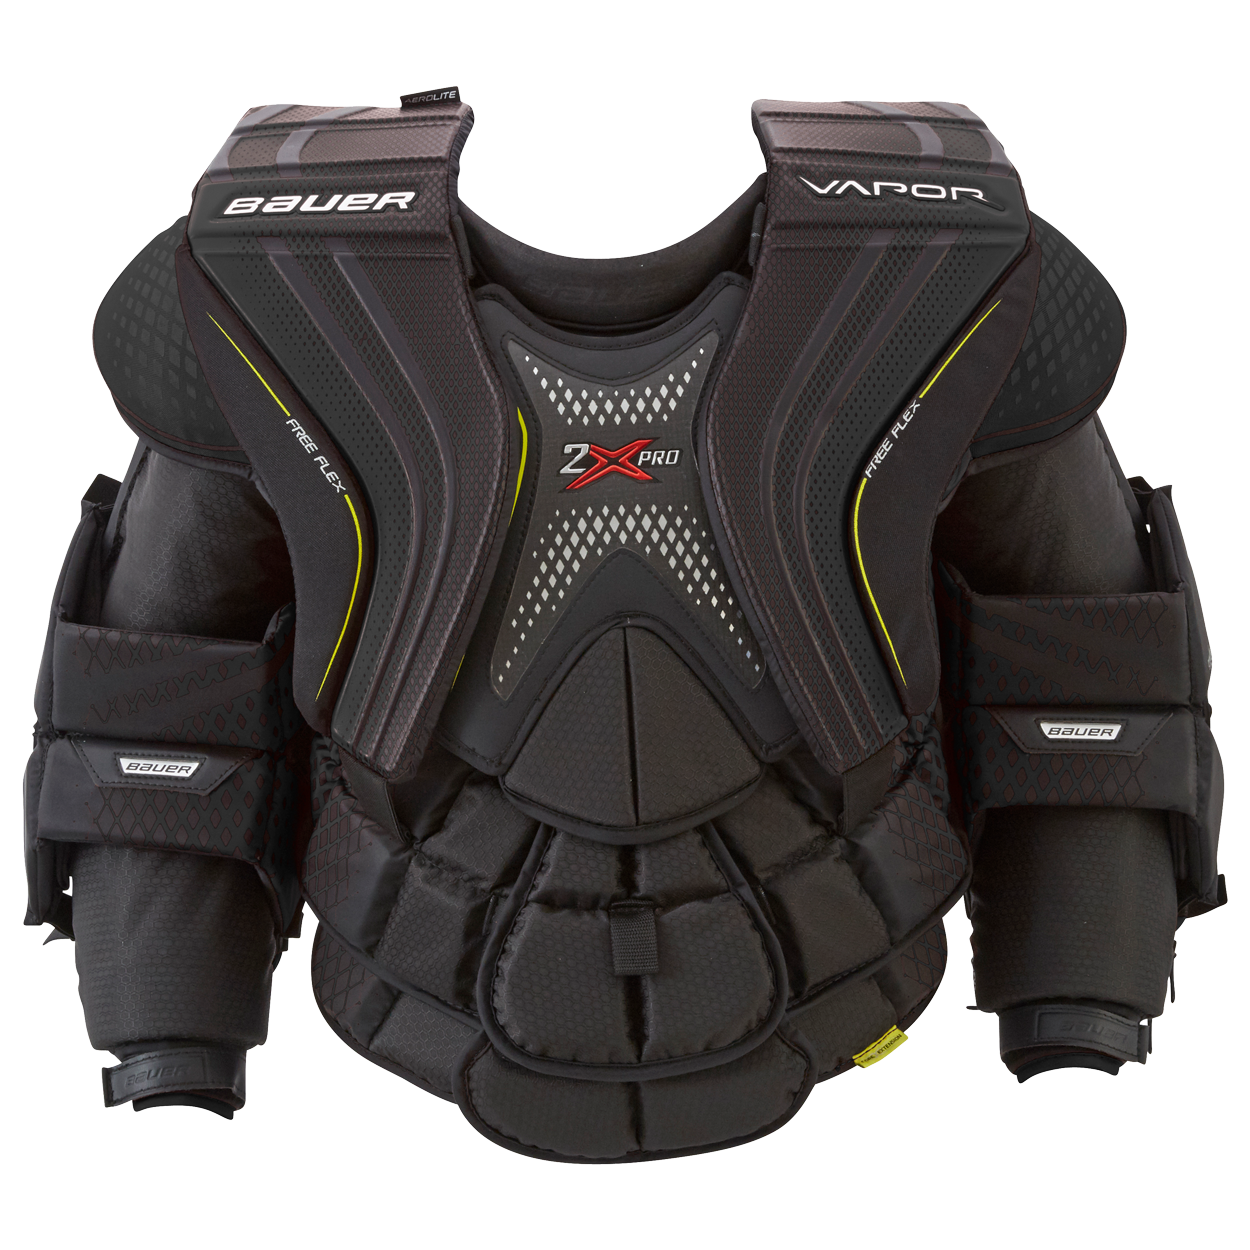 Vapor 2X PRO Chest Protector Senior,,moyen